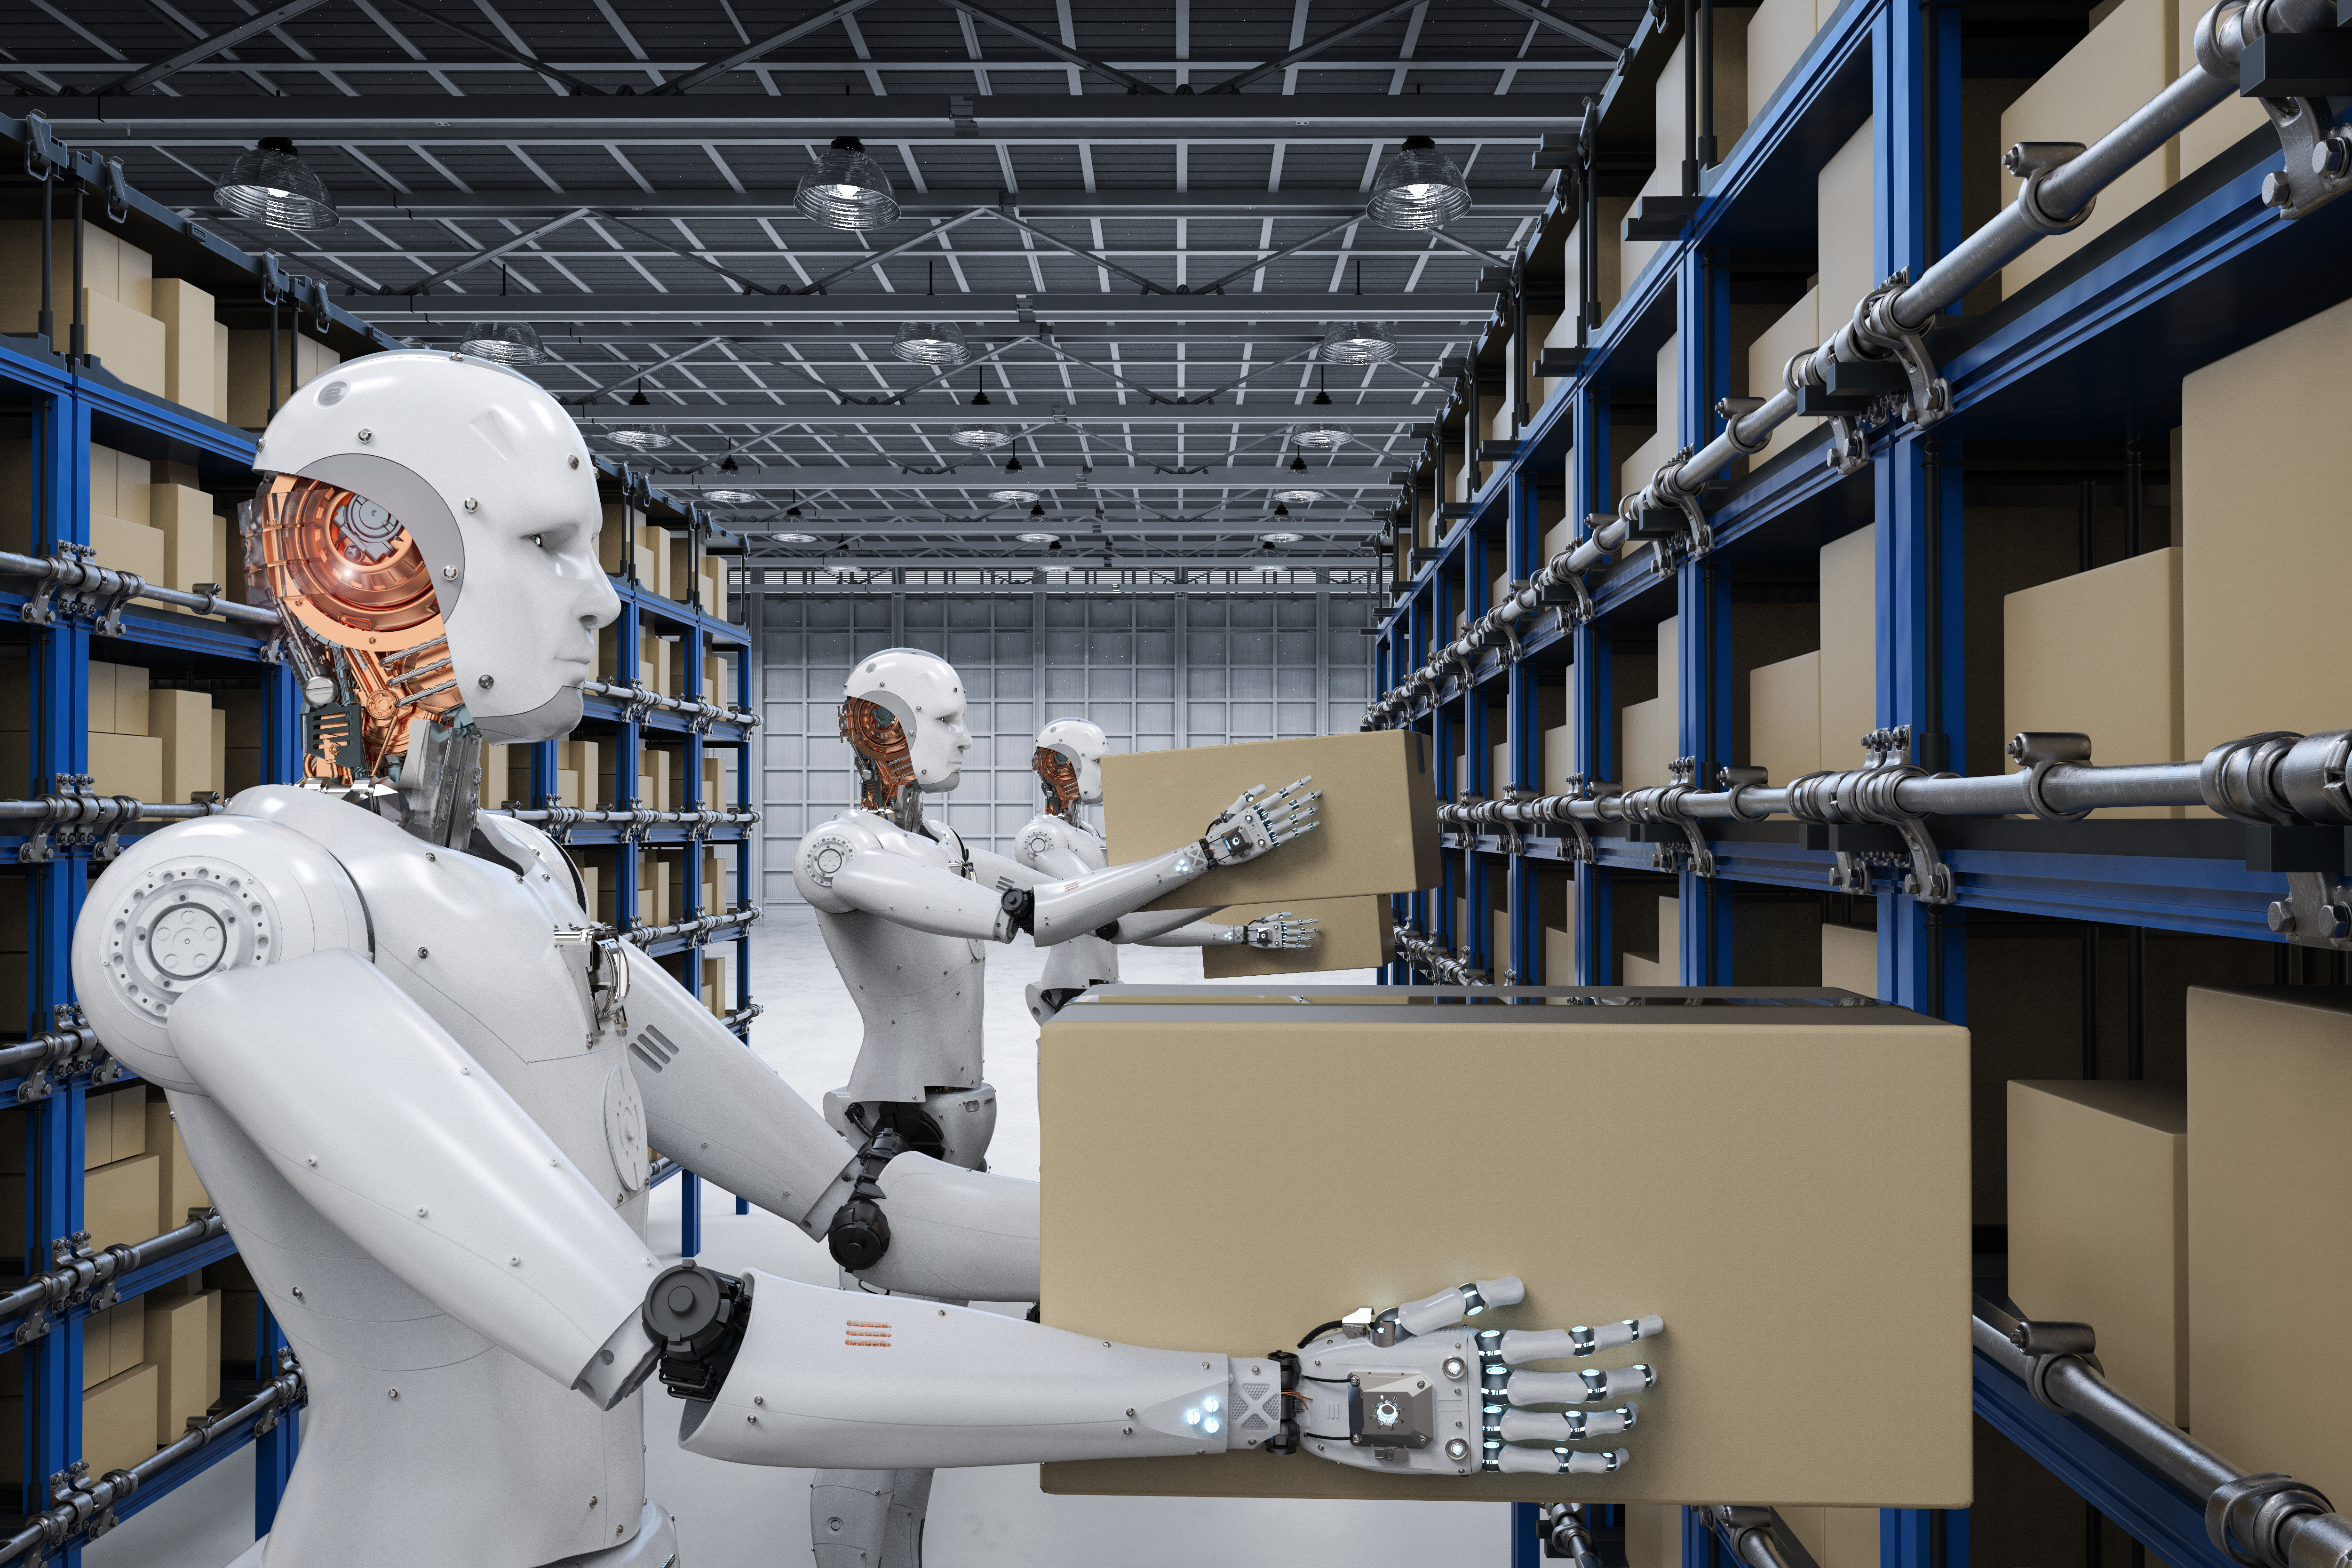 AdobeStock_177360139 robots in warehouse